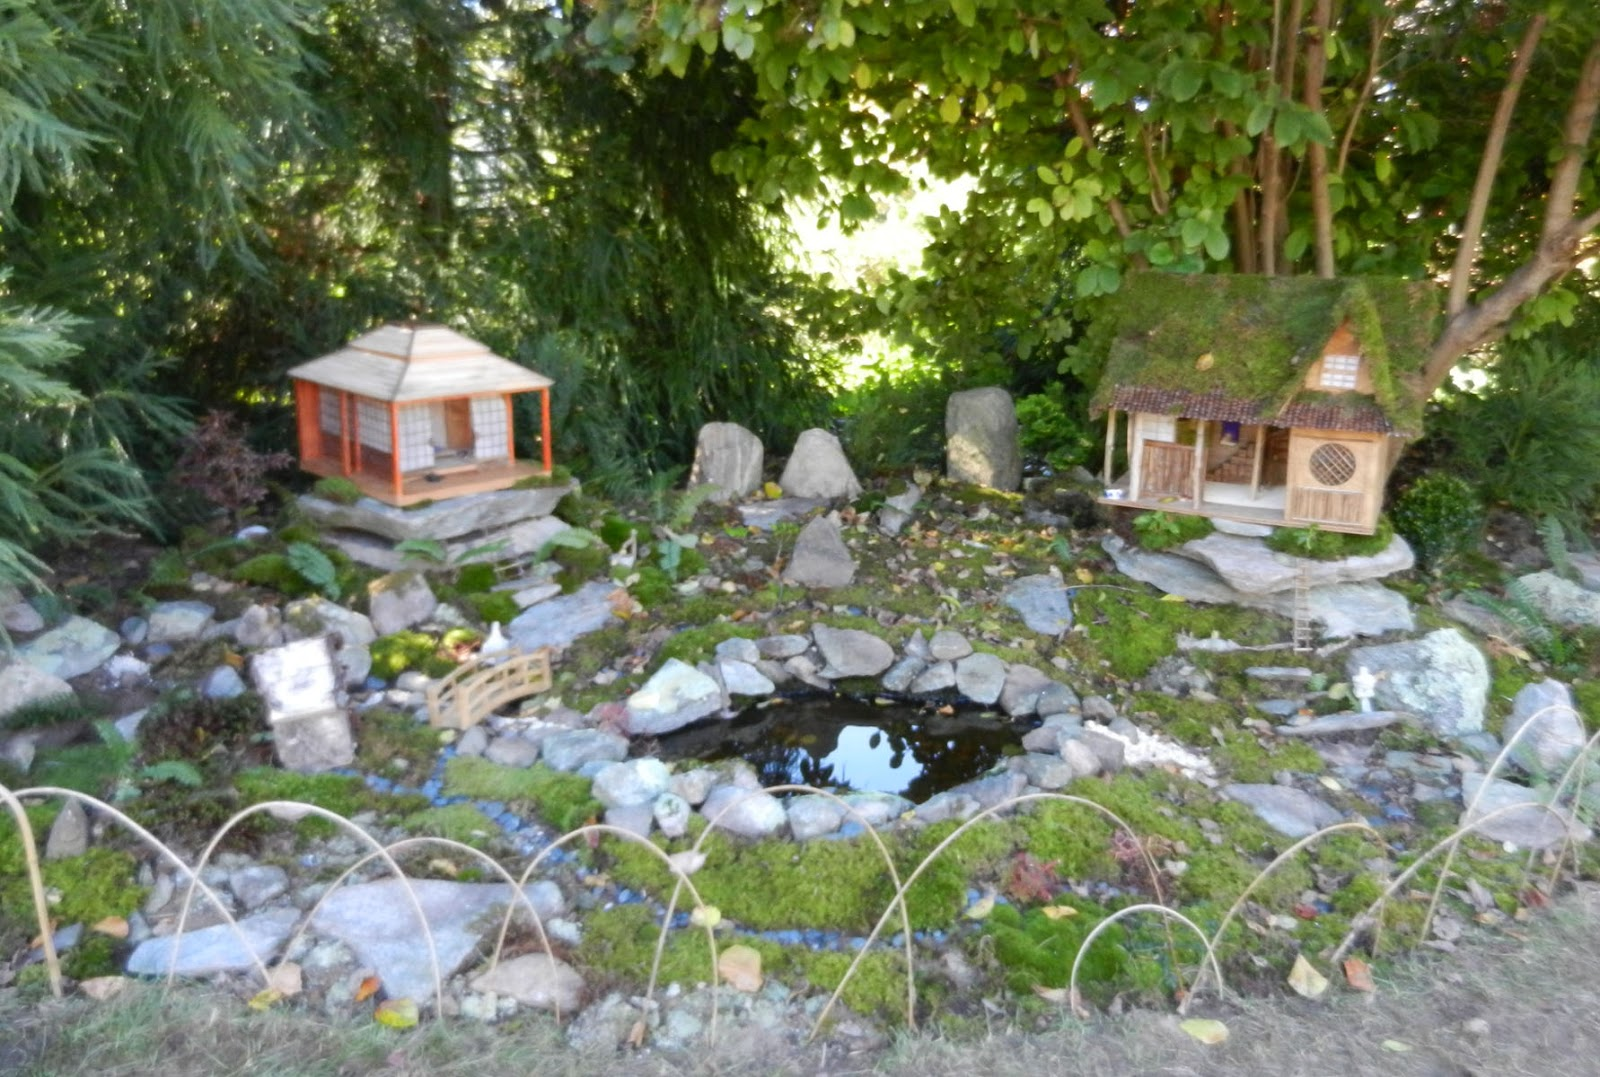 My Melange: Wee Faerie Village At Florence Griswold Museum